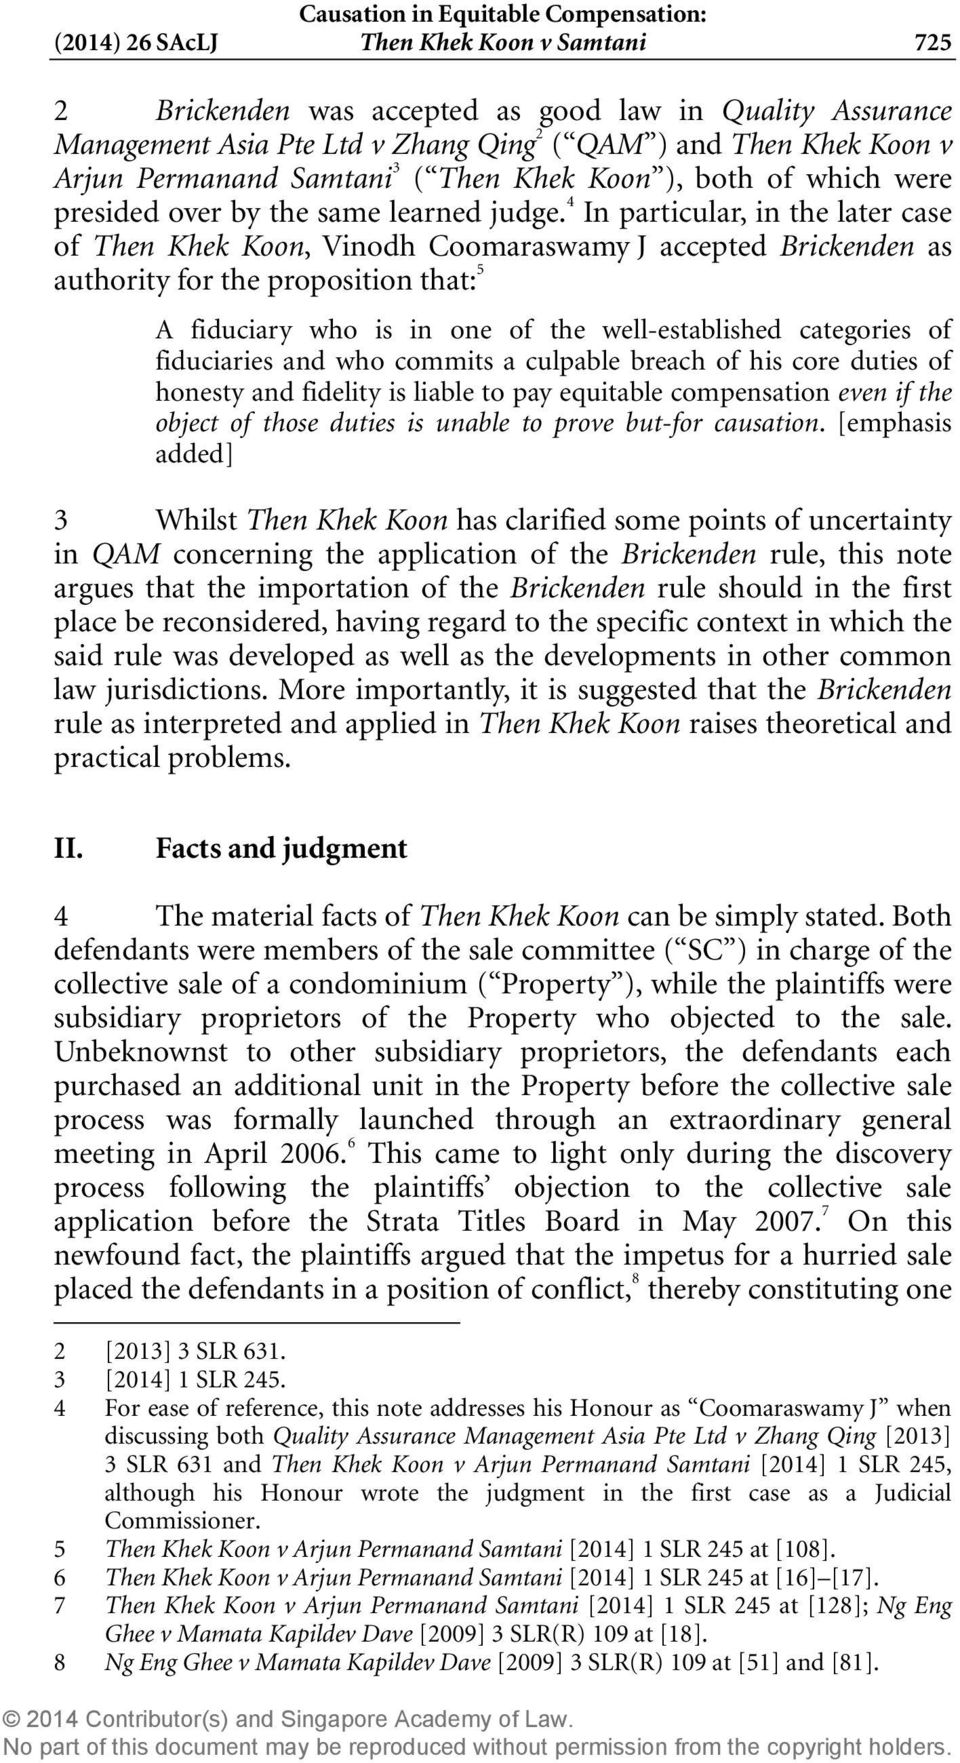 4 In particular, in the later case of Then Khek Koon, Vinodh Coomaraswamy J accepted Brickenden as authority for the proposition that: 5 A fiduciary who is in one of the well-established categories